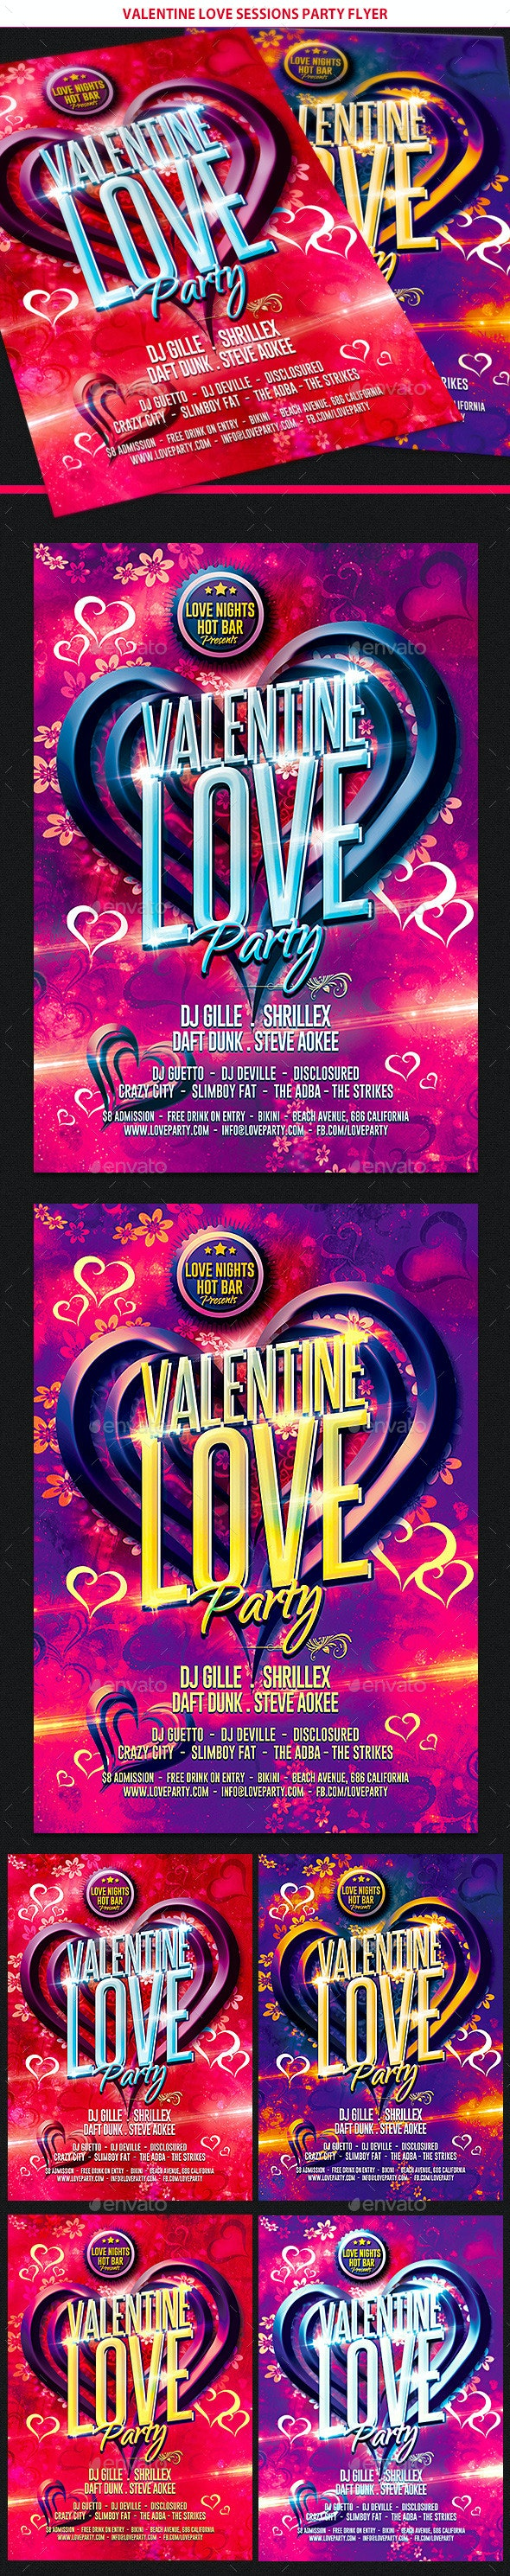 Valentine Love Sessions Party Flyer - Clubs & Parties Events